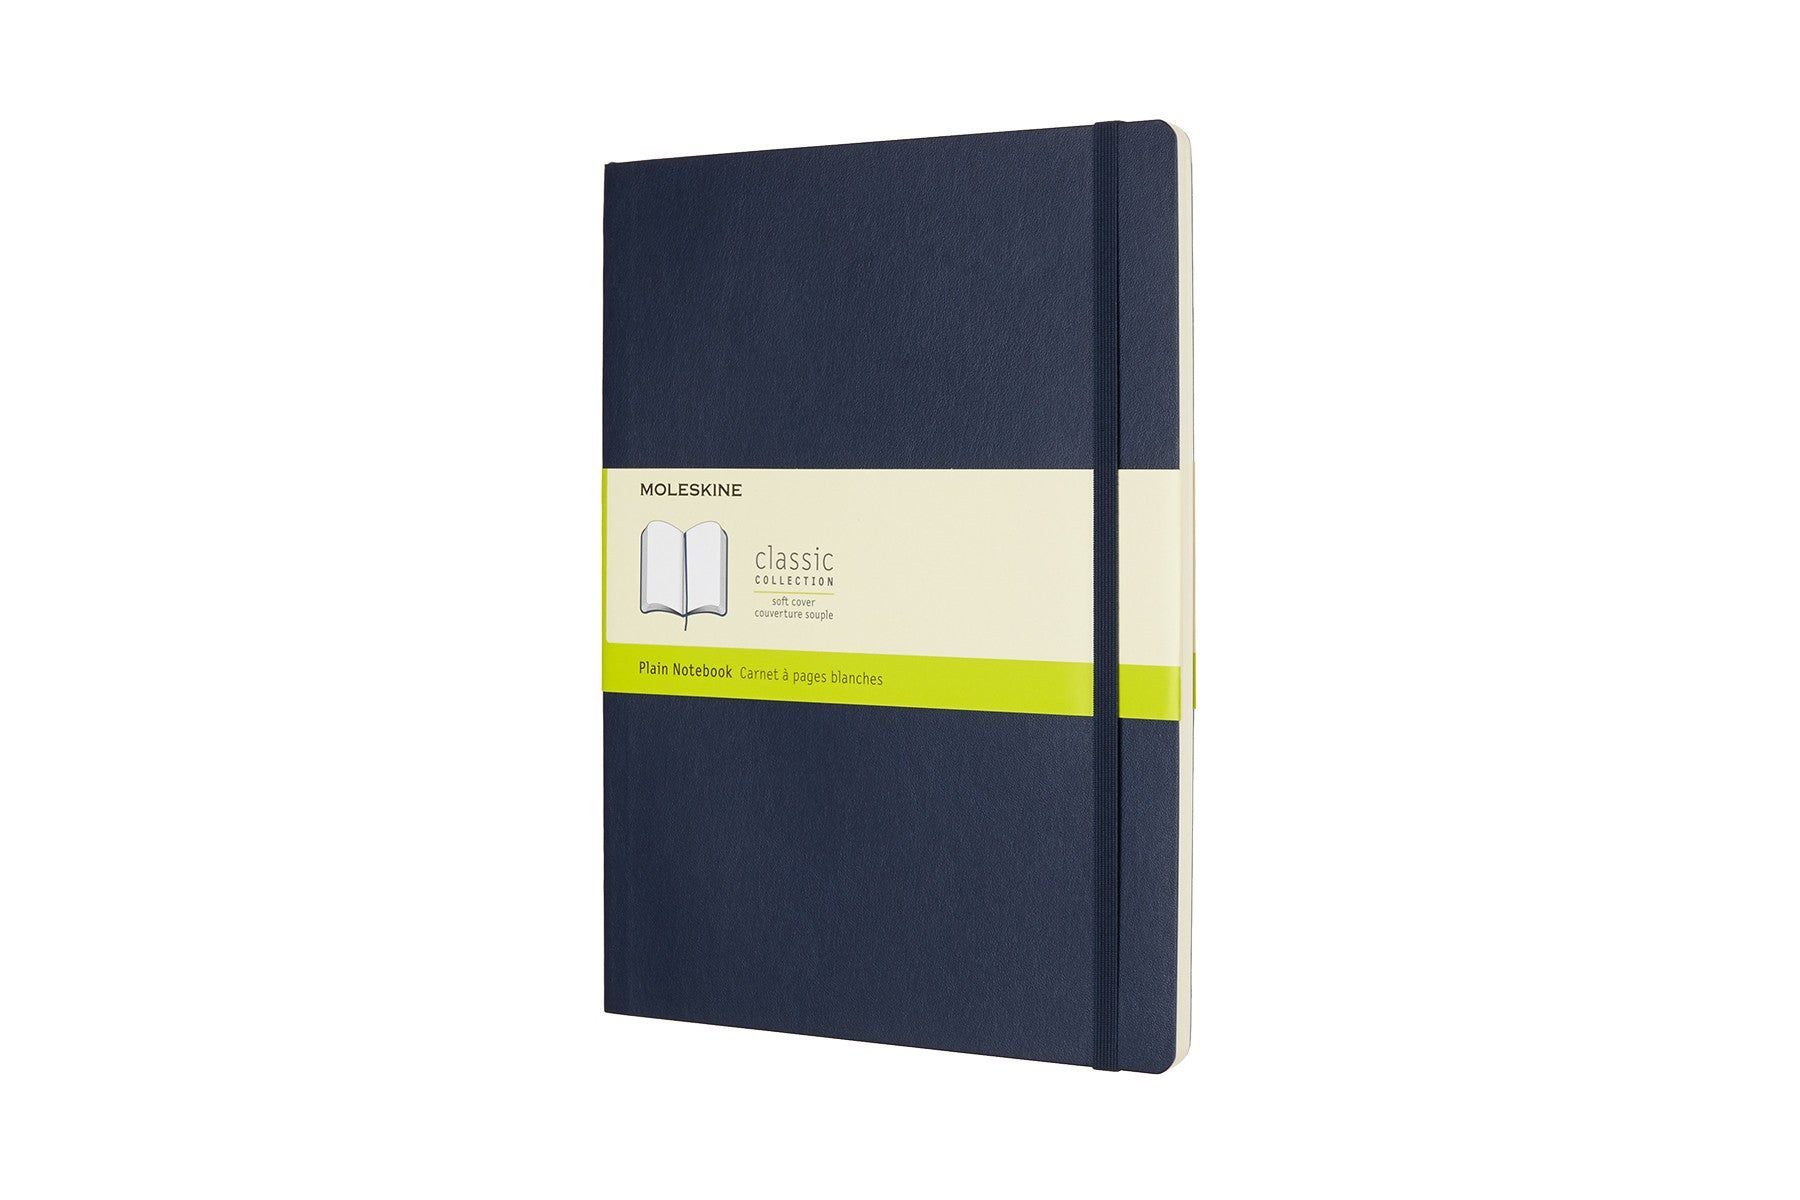 Moleskine notebook softcover x-large plain